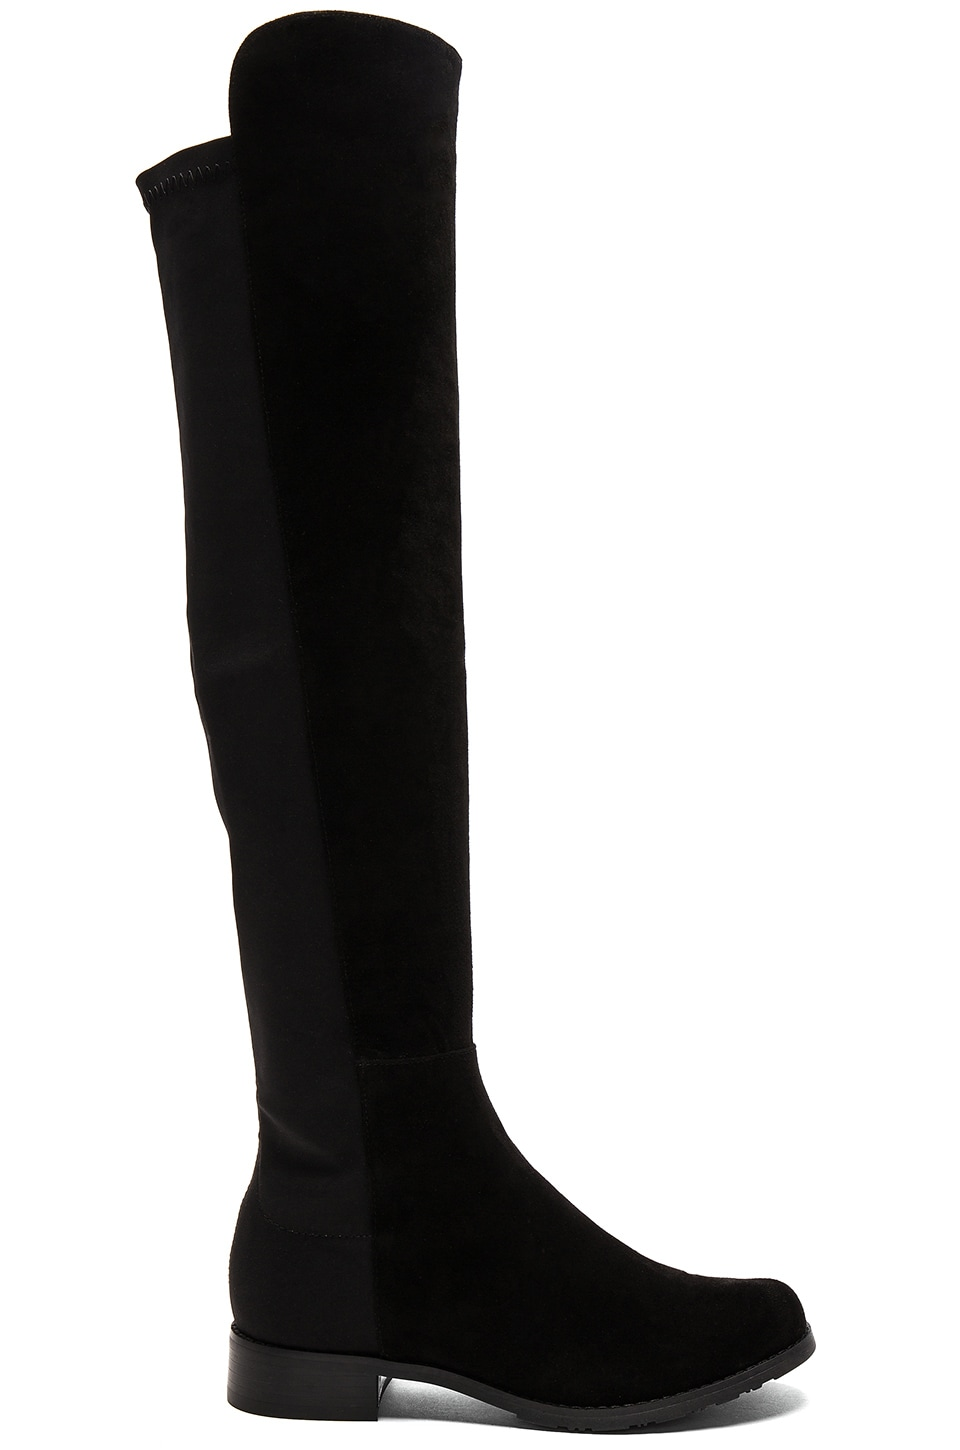 Tony Bianco Panache Boot in Black Kid Suede & Black Micro Stretch